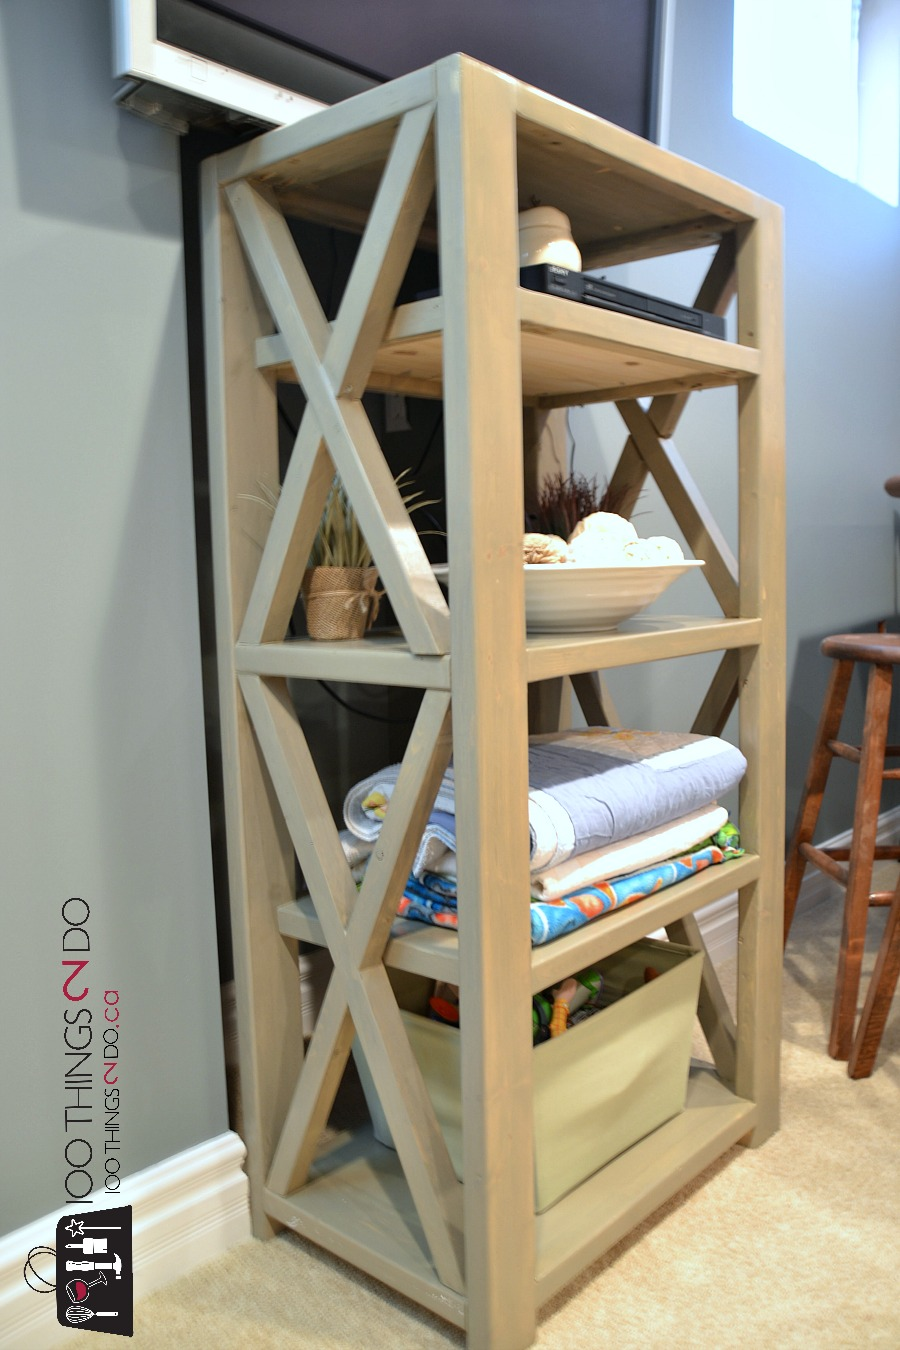 DIY Rustic X Bookshelf, DIY bookshelf, Ana White Rustic X, $21 DIY bookshelf, build your own bookshelf, farmhouse bookshelf